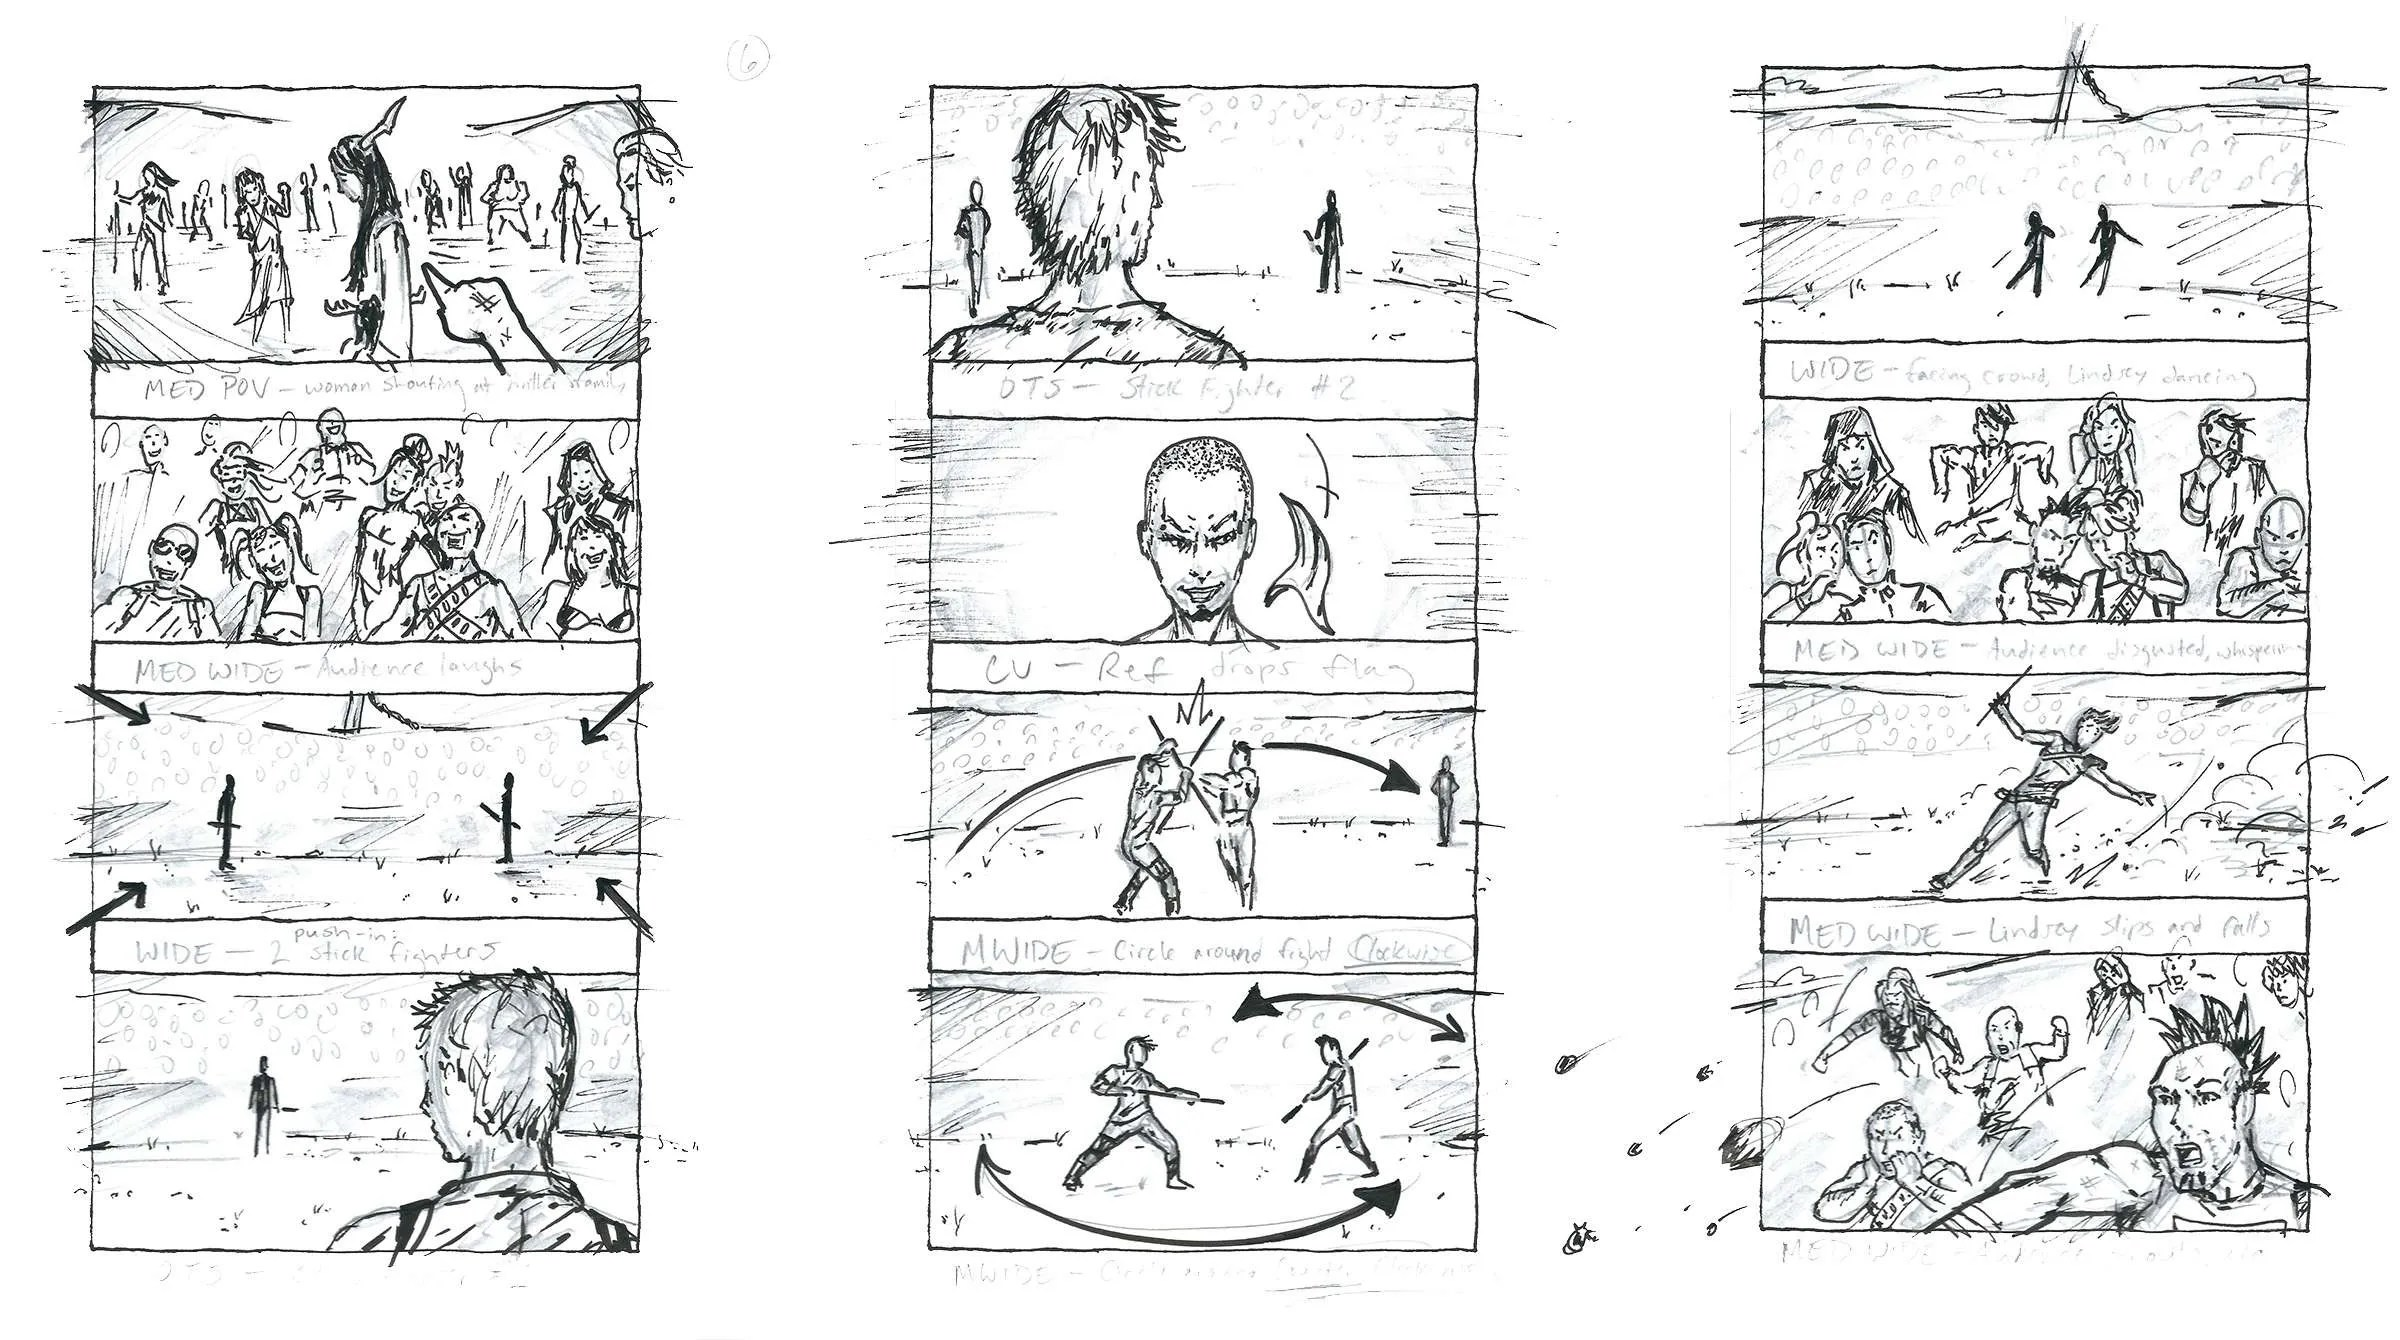 The difference between Playboards and Storyboards